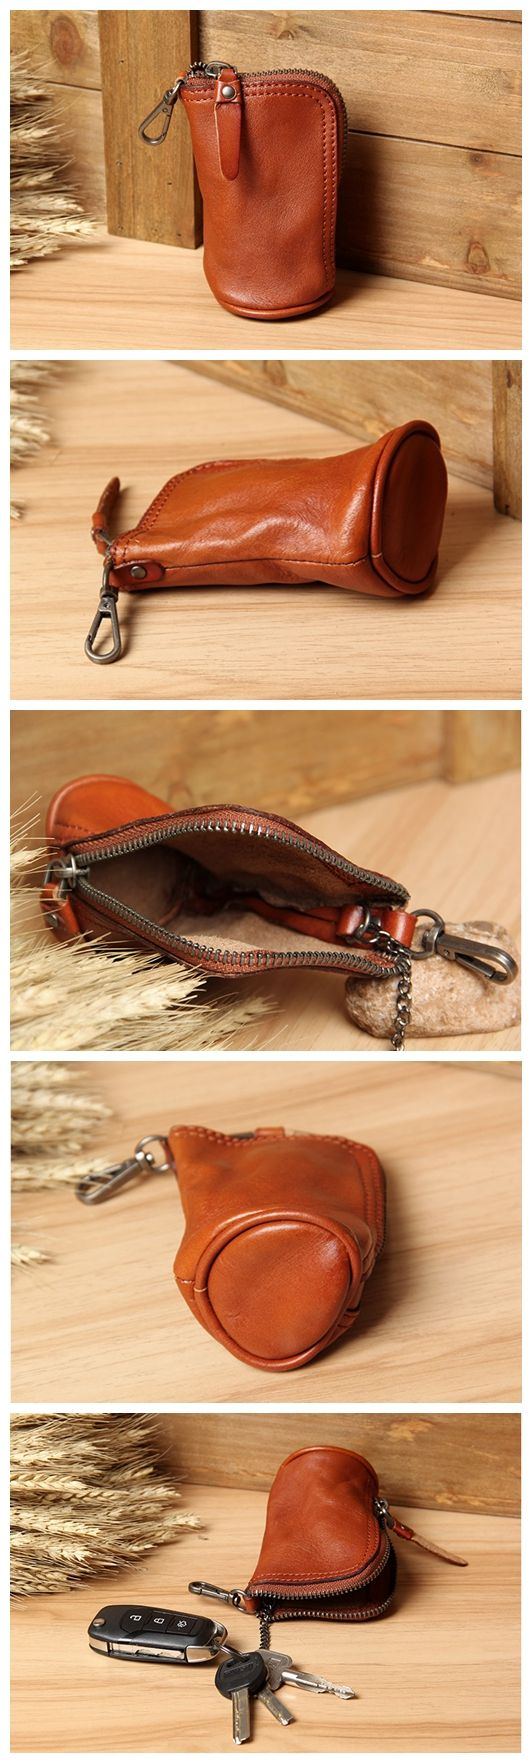 Handmade Genuine Leather Car Key Holder Leather Key Organizer Leather Key Chain Leather Case 2989 Overview: Design: Handmade Genuine Leather Car Key Holder In Stock: 4-5 days For Making Include: Only